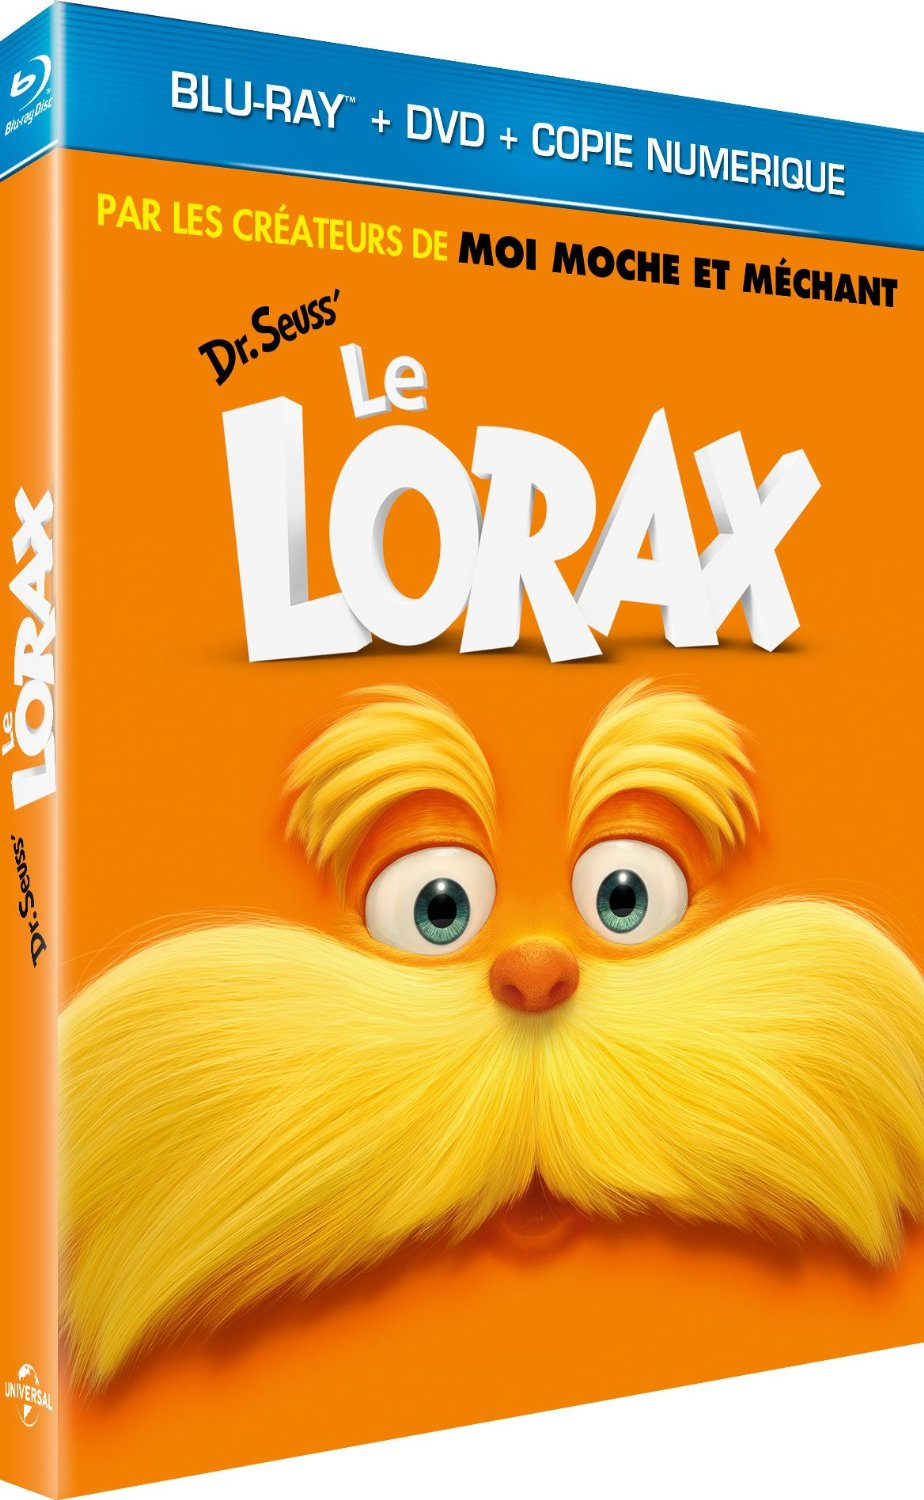 Le Lorax [Combo Blu-ray + DVD + Copie digitale]